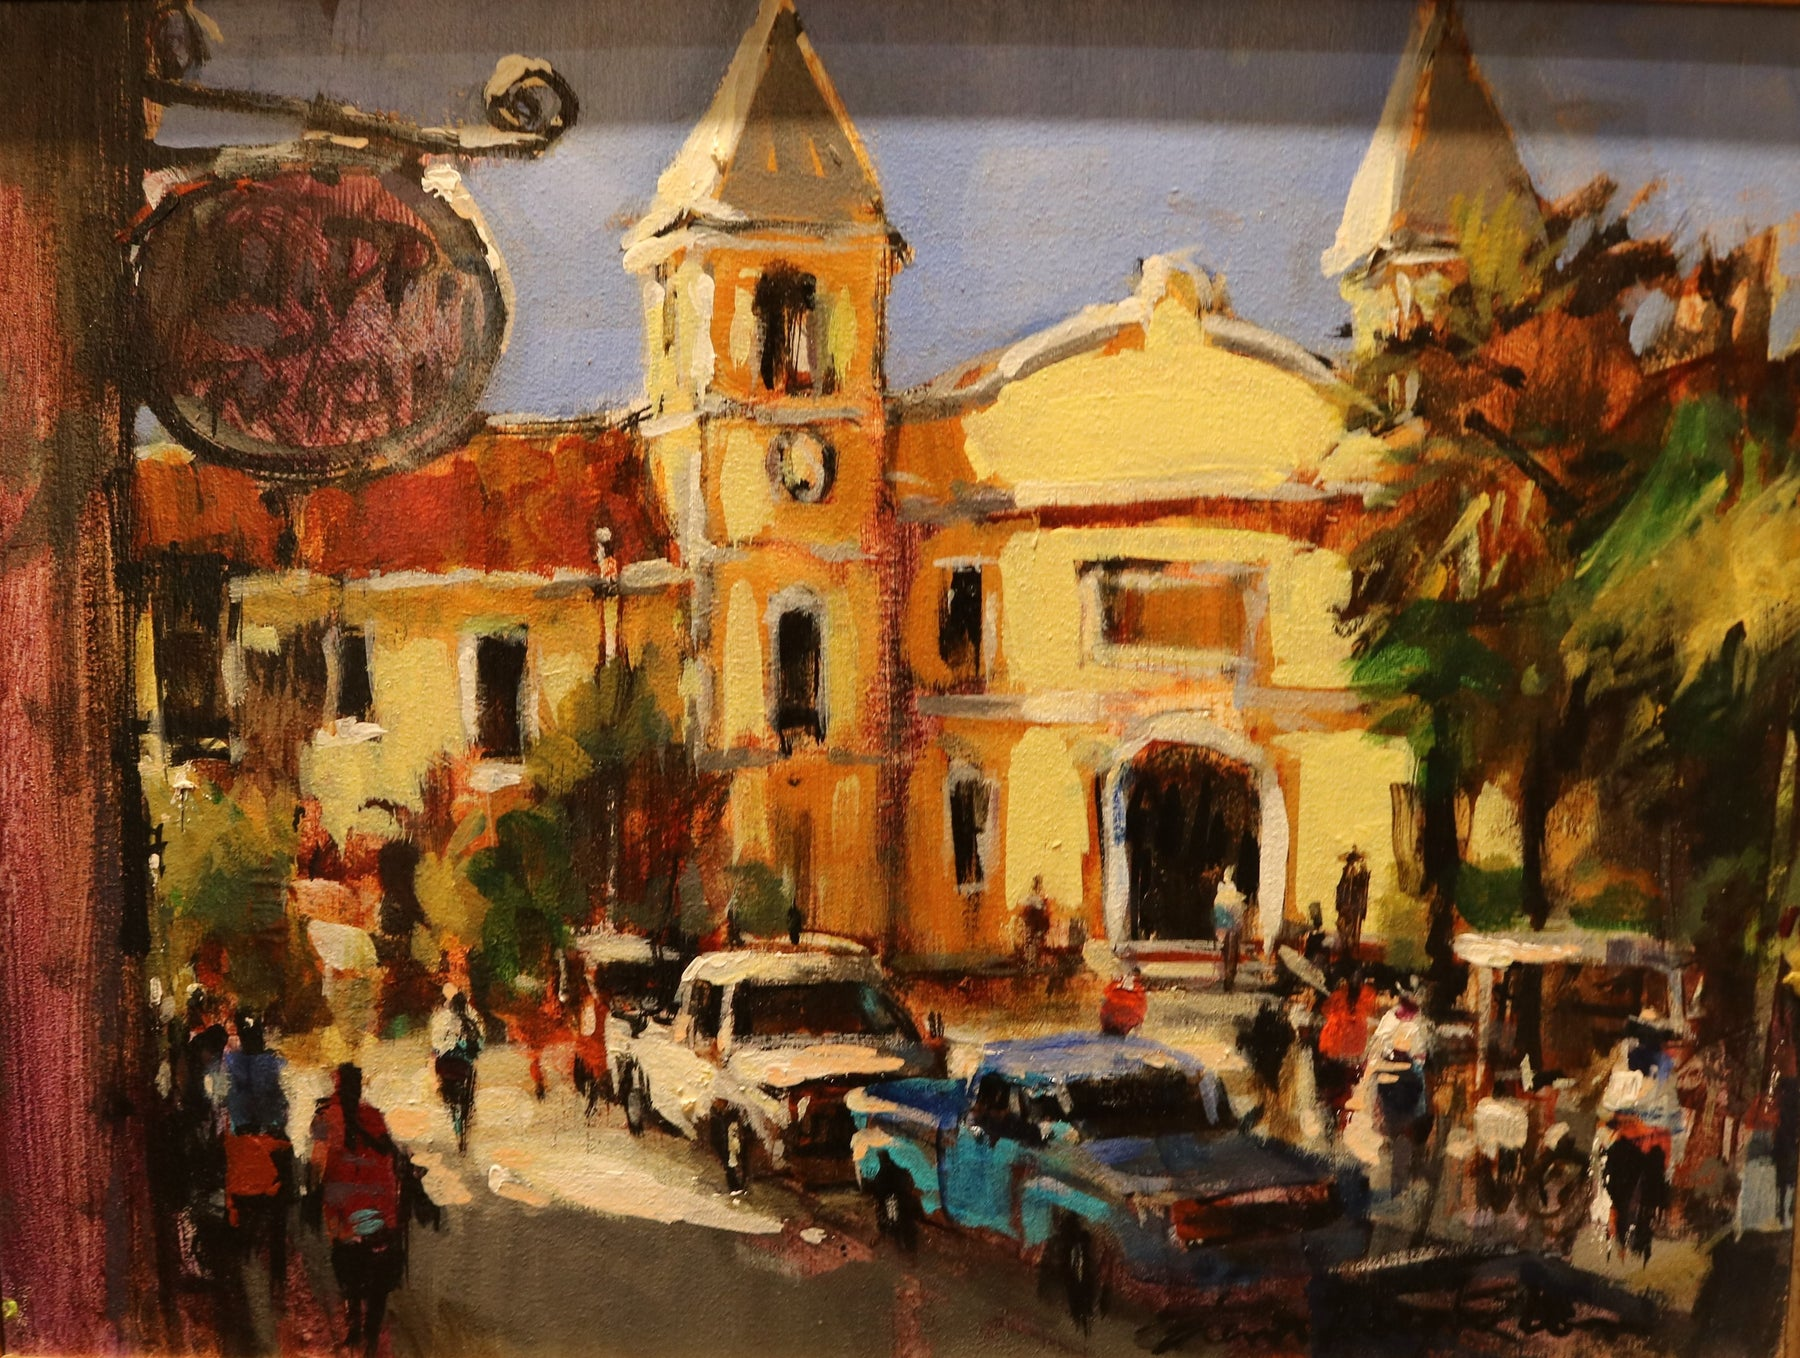 "La Plaza San Jose  - (Town Square San Jose) Acrylic on Canvas (Original) by Brent Heighton. 16""(W)x12""(H) - BH237-000RG"